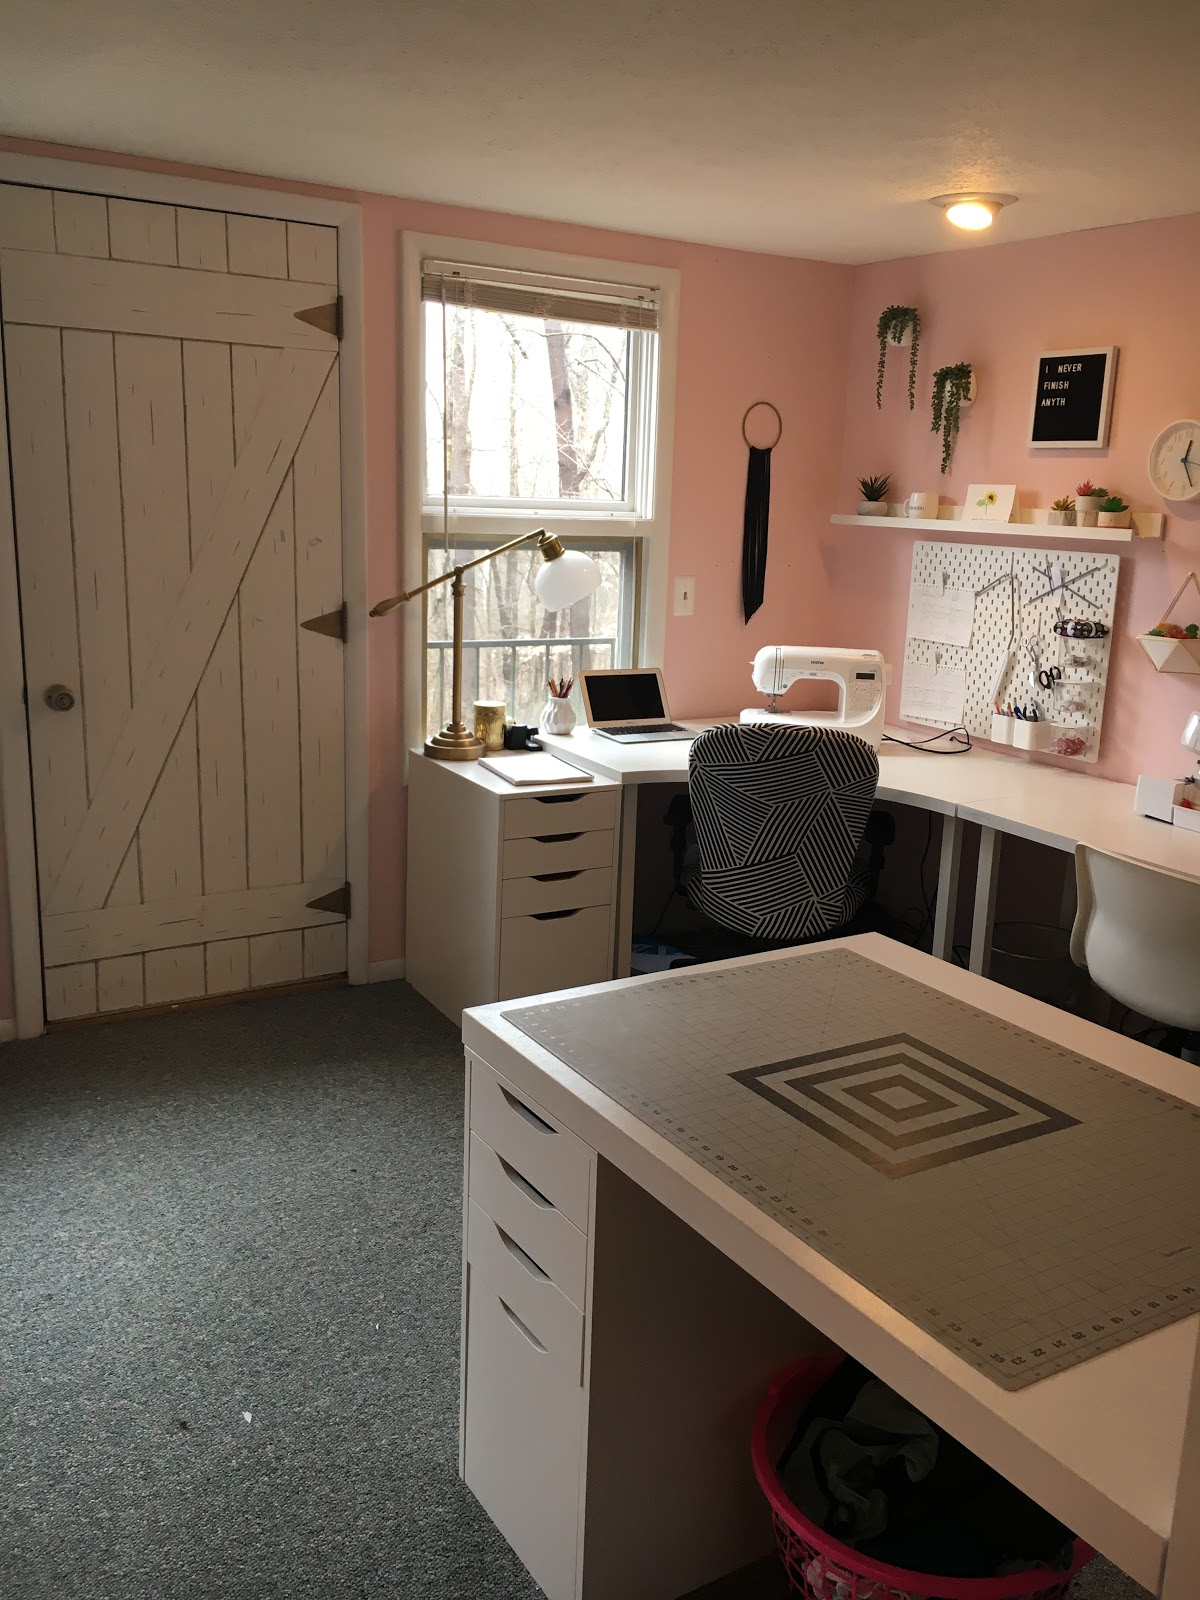 Designing A Sewing Room: 110 Creations